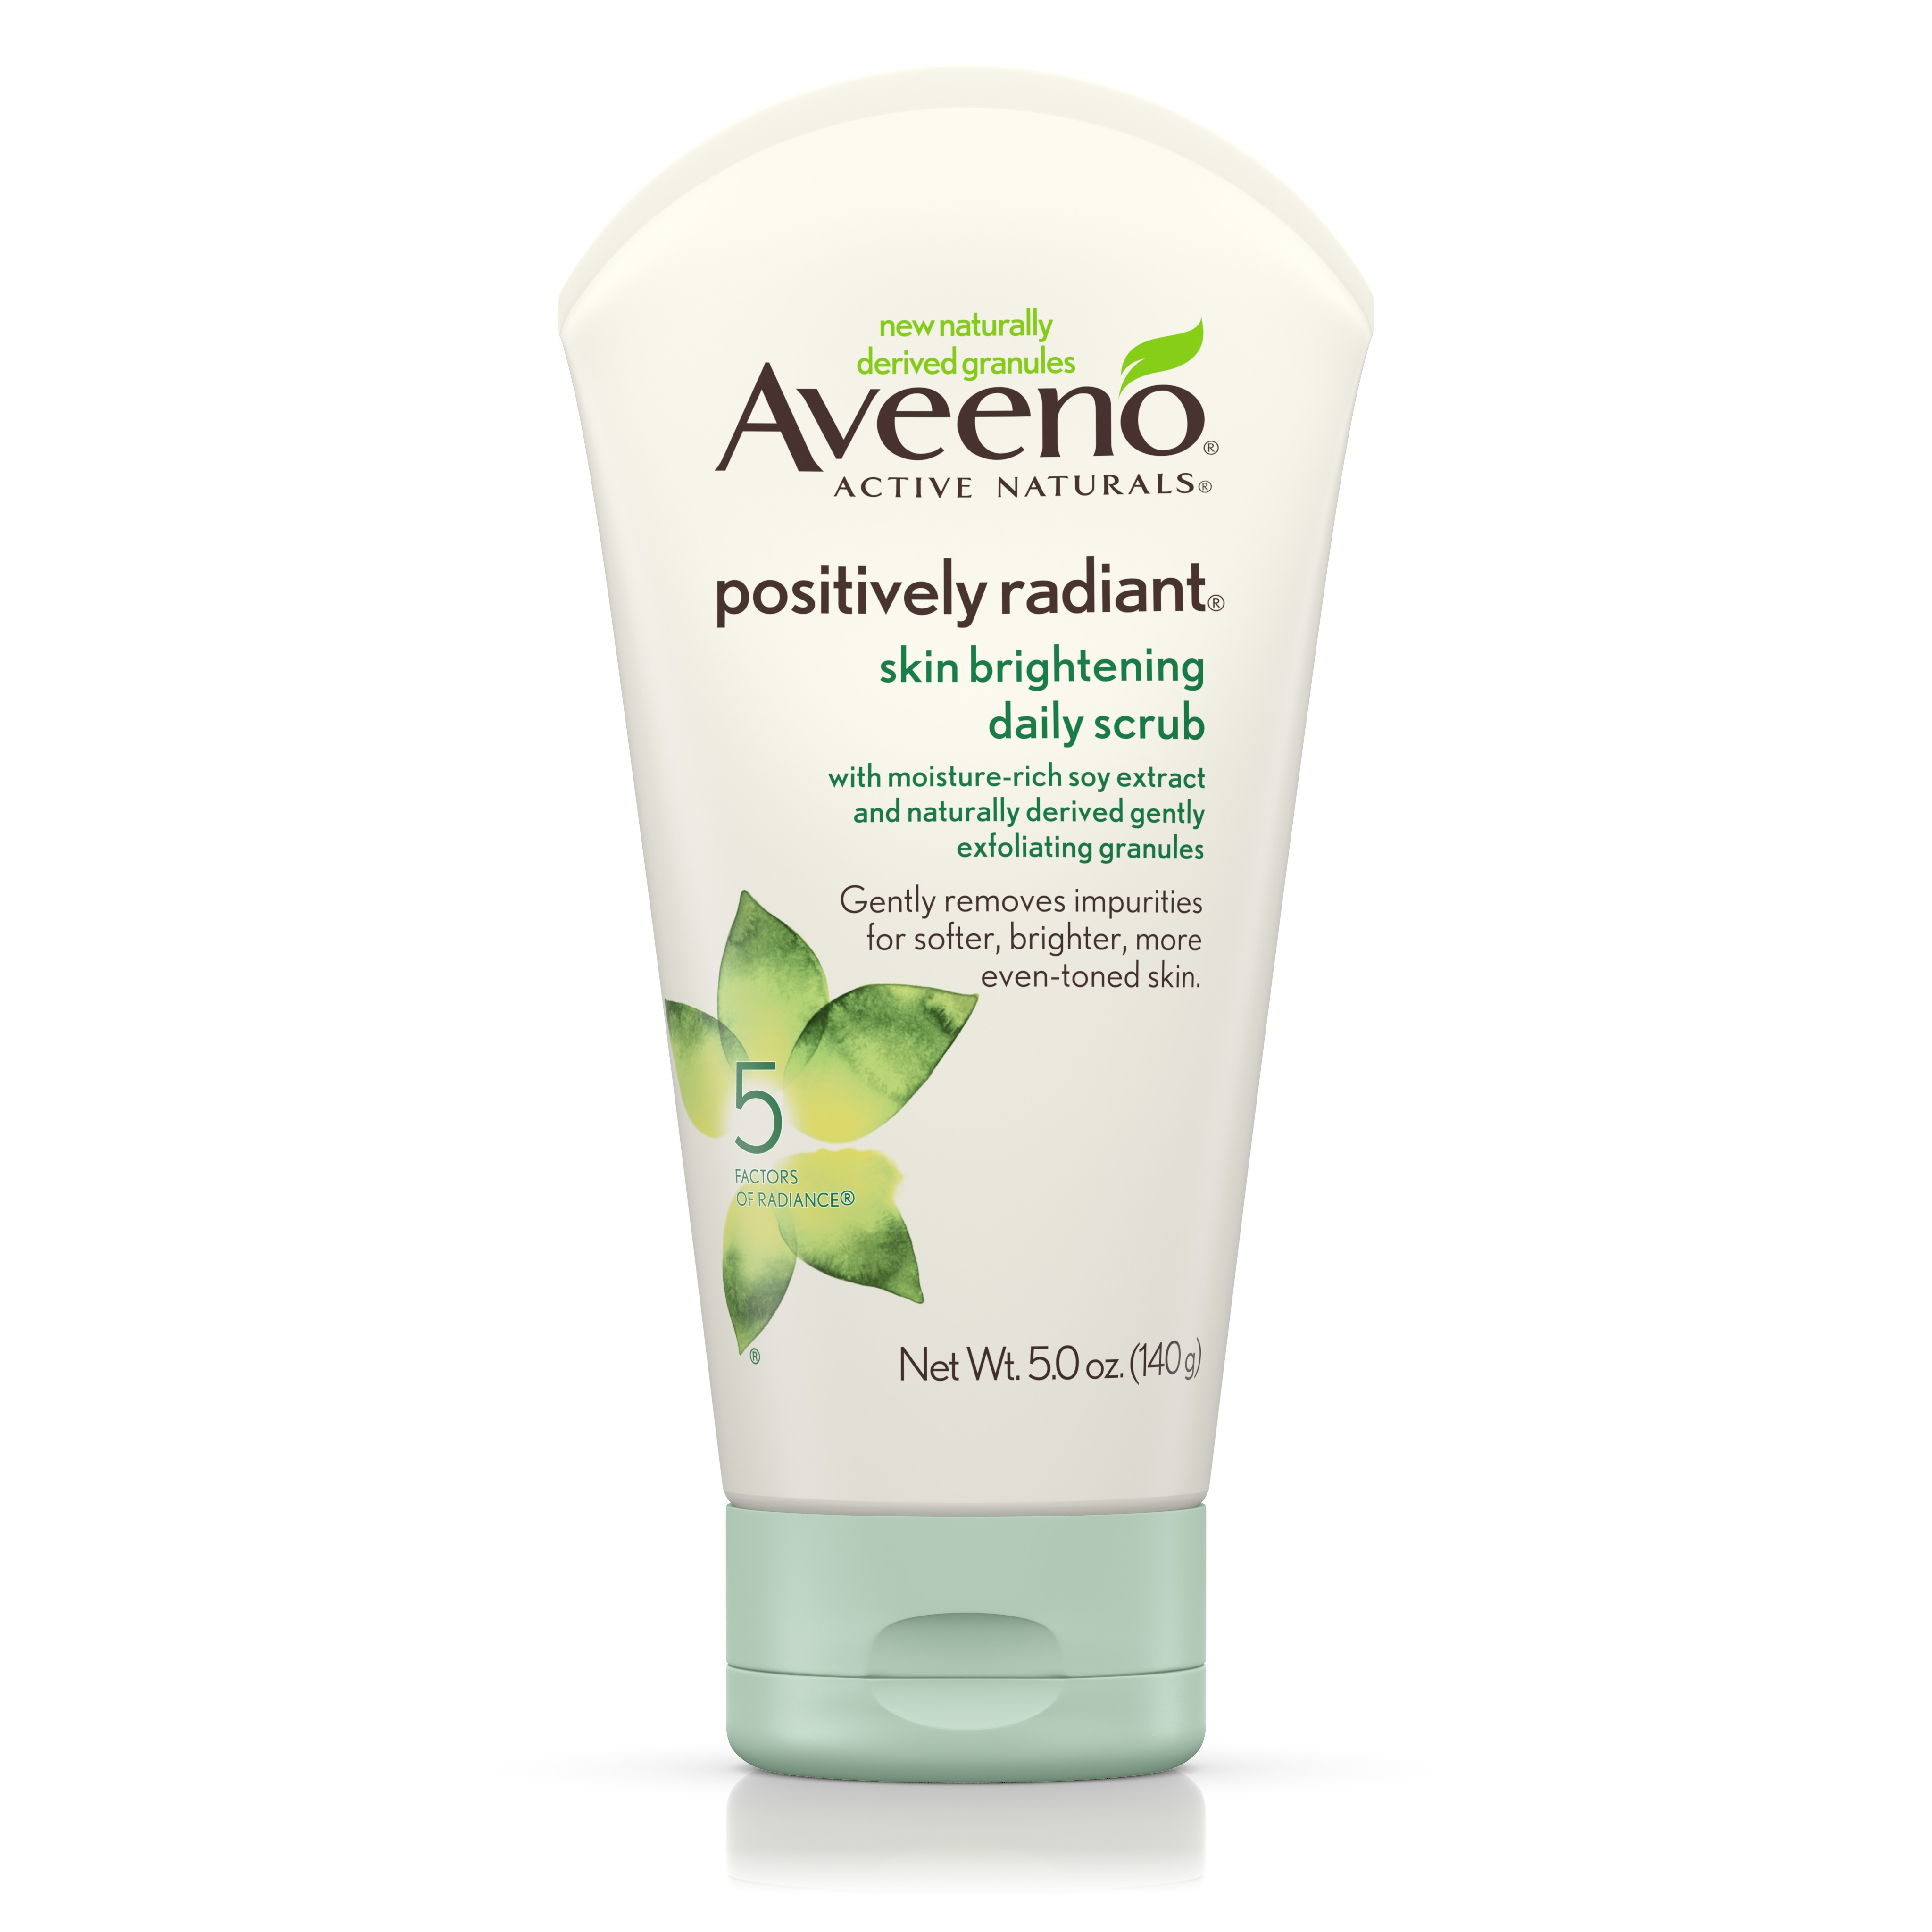 Aveeno Positively Radiant Skin Brightening Exfoliating Daily Scrub 5Oz